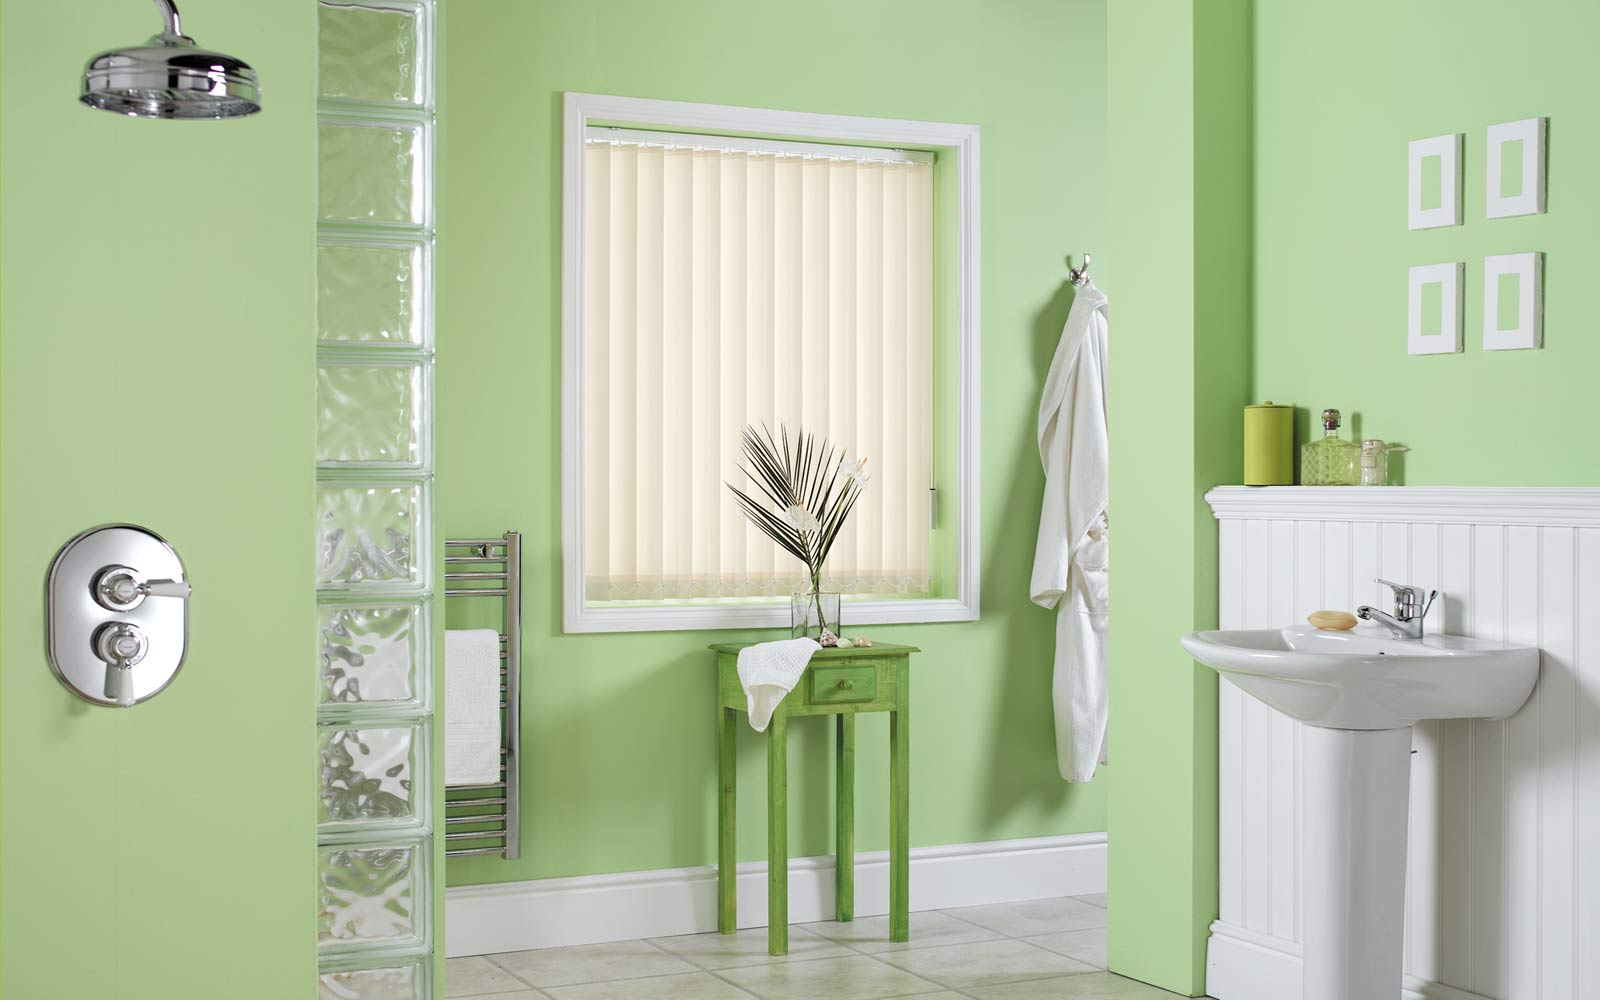 Vertical Blinds in a Bathroom